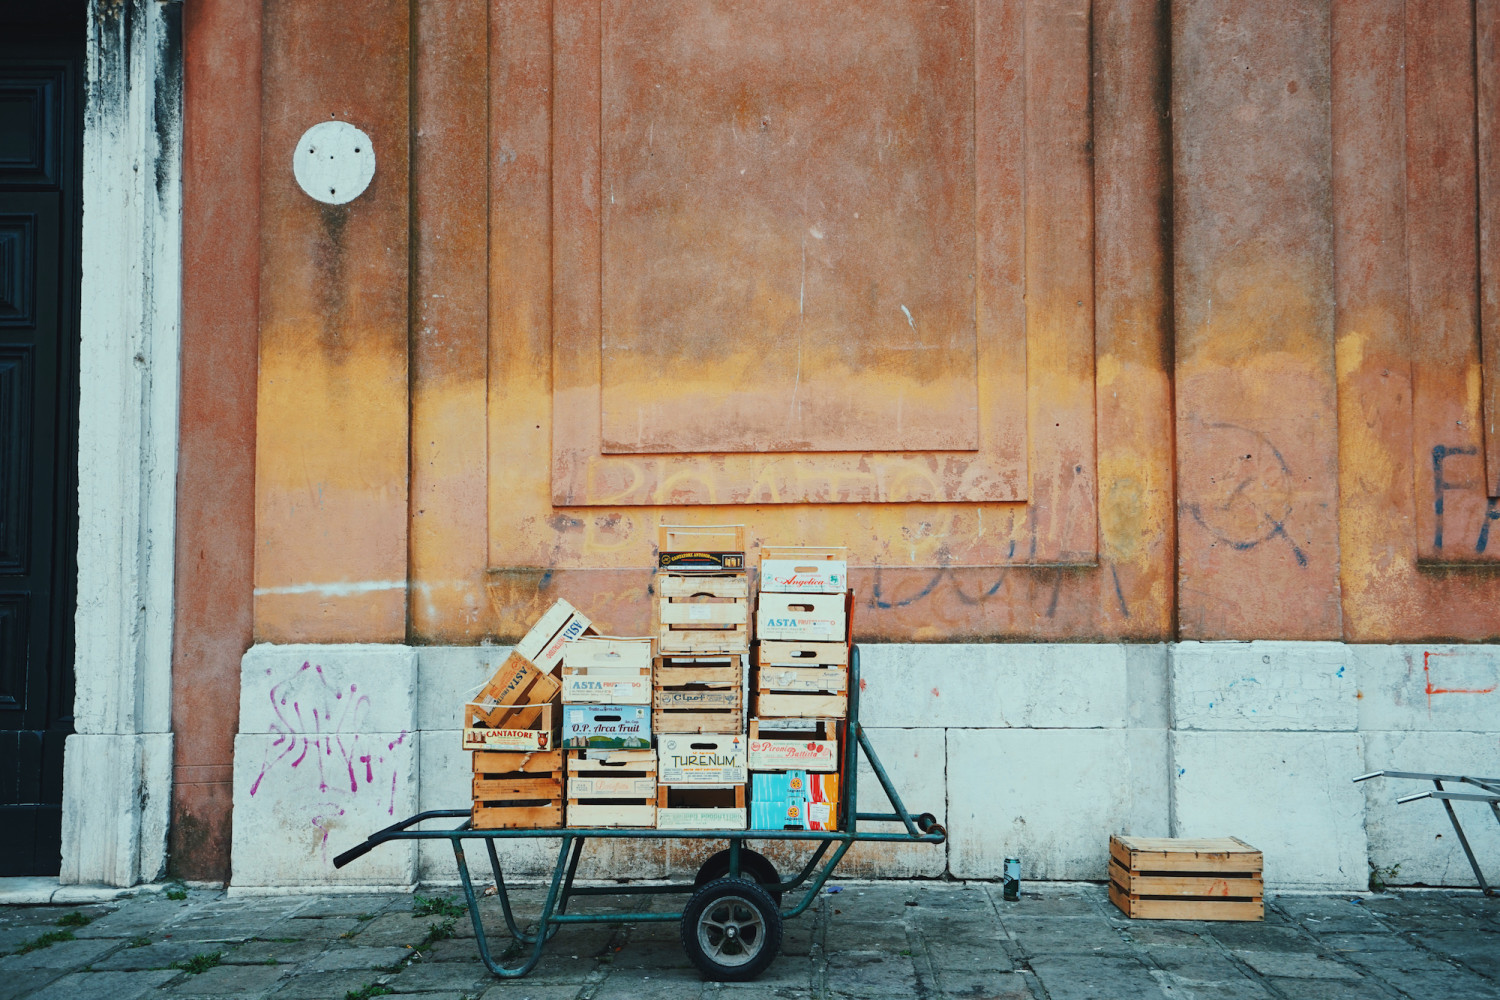 venice-crates-facade-dante-vincent-photography